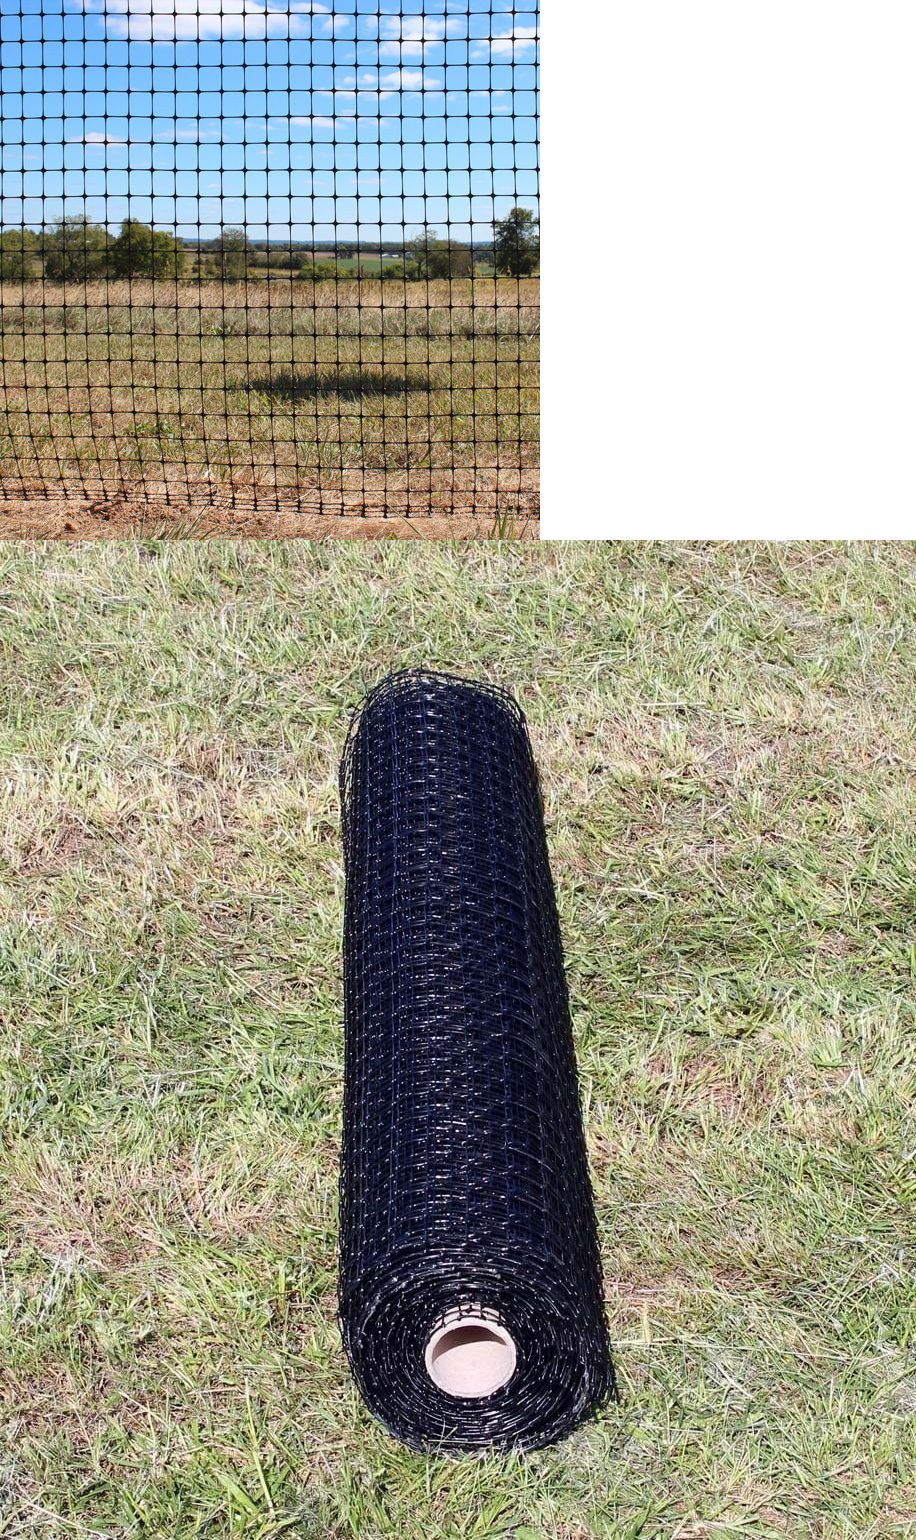 Privacy screen for chain link fence ebay - Other Garden Fencing 177033 4 5 X 100 Trident Extra Strength Deer Fencing Garden And